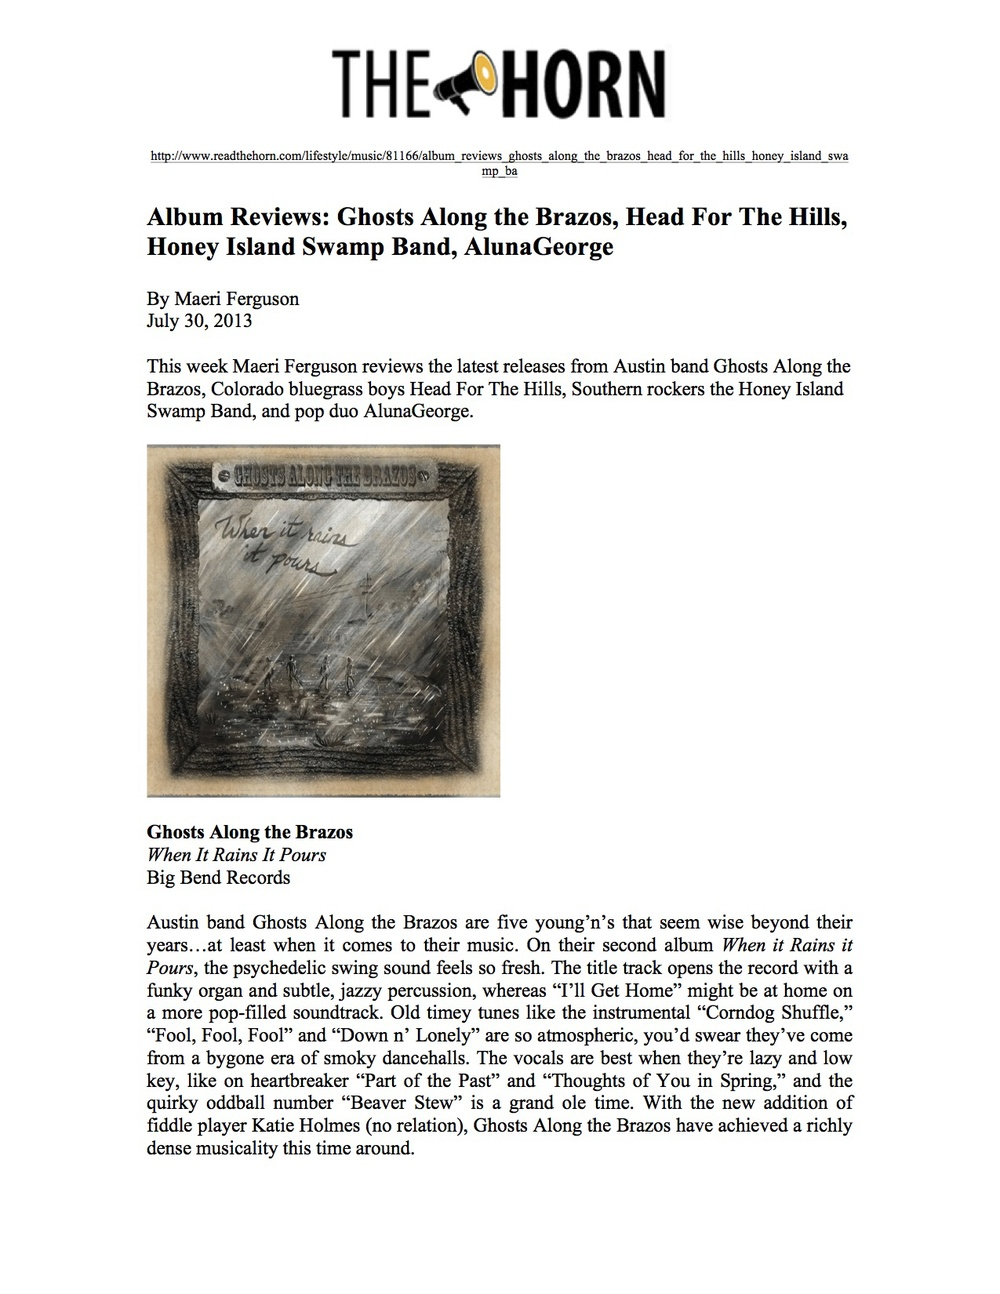 Big Bend Records_Ghosts Along the Brazos_The Horn_July 30, 2013 jpeg.jpg